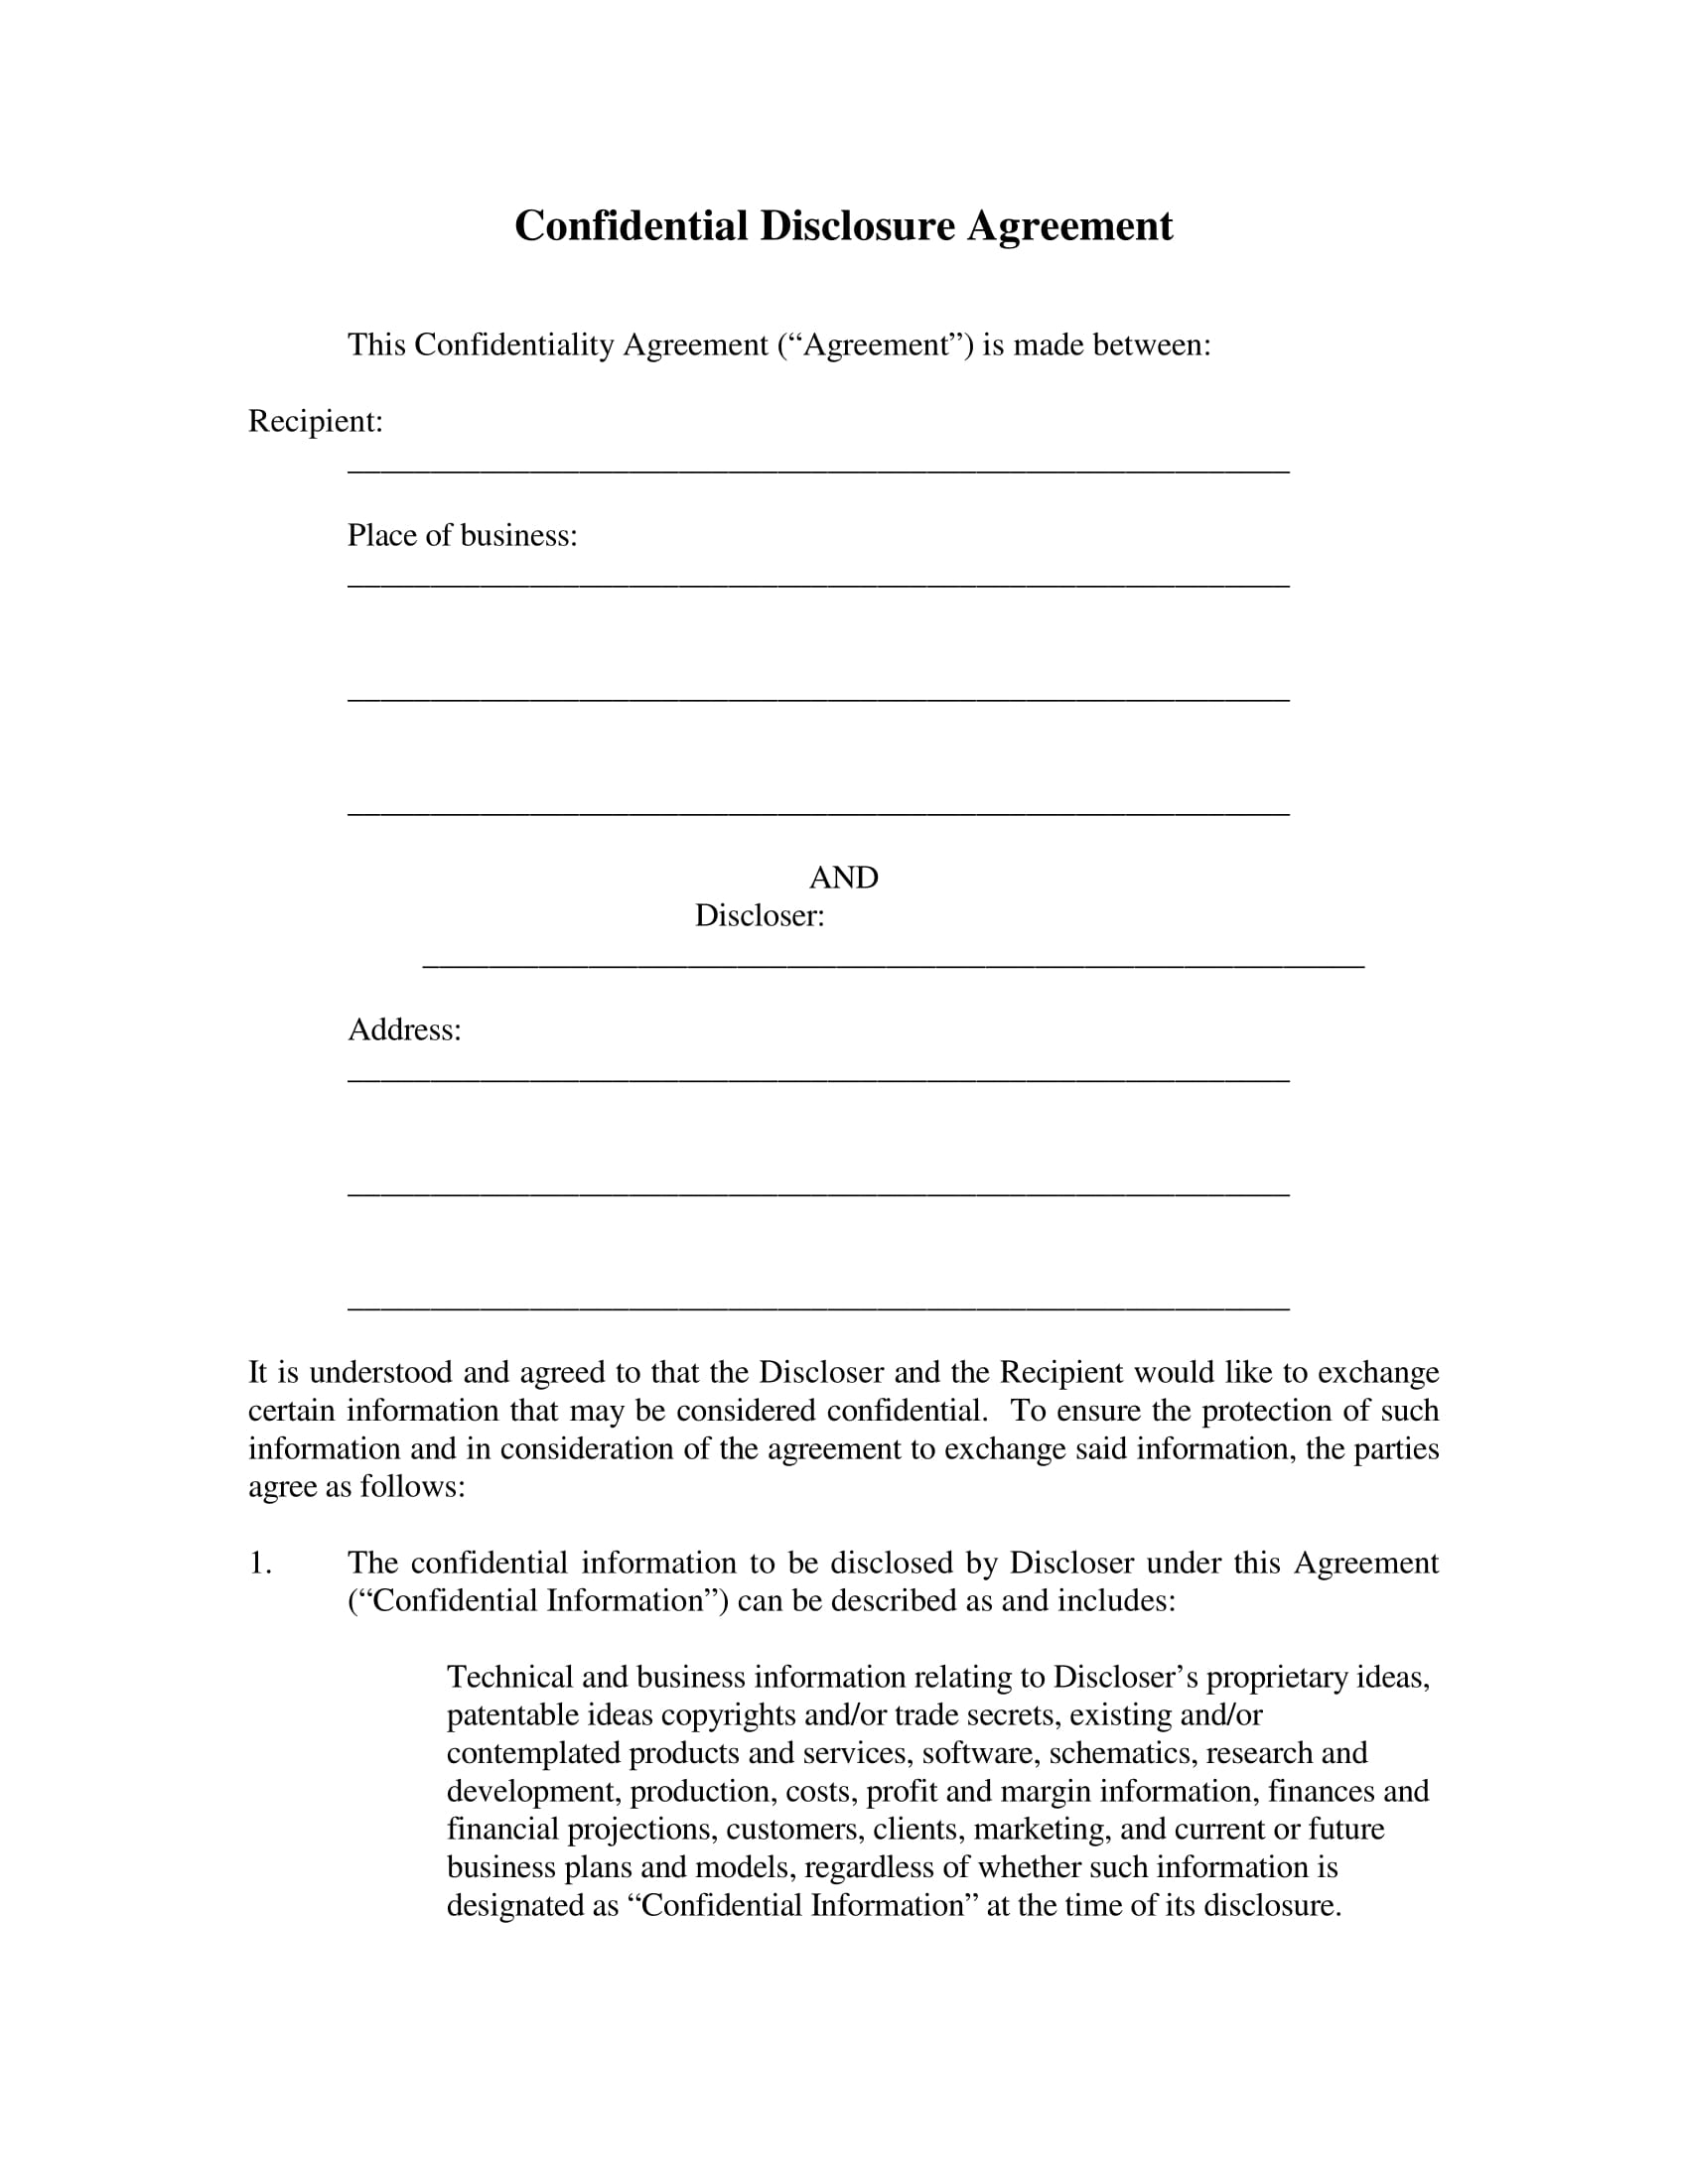 confidential disclosure agreement example 1